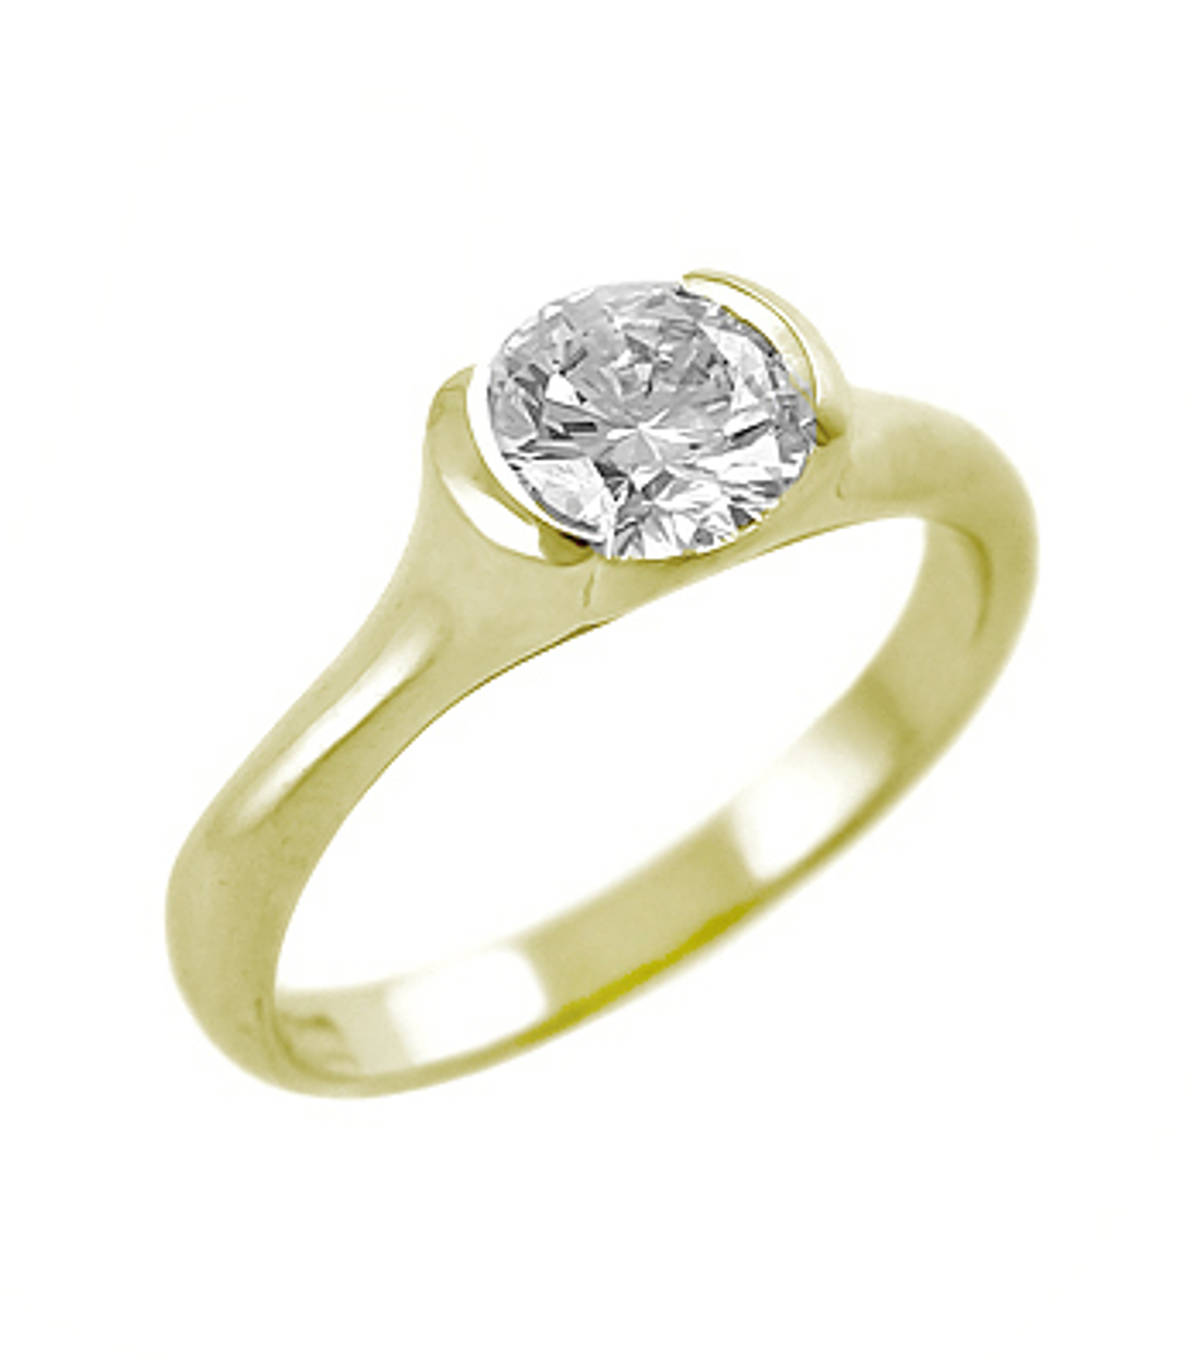 DR66993Oval diamond solitaire ringPictured item: 0.57cts diamond set in 18k yellow goldimage 68962